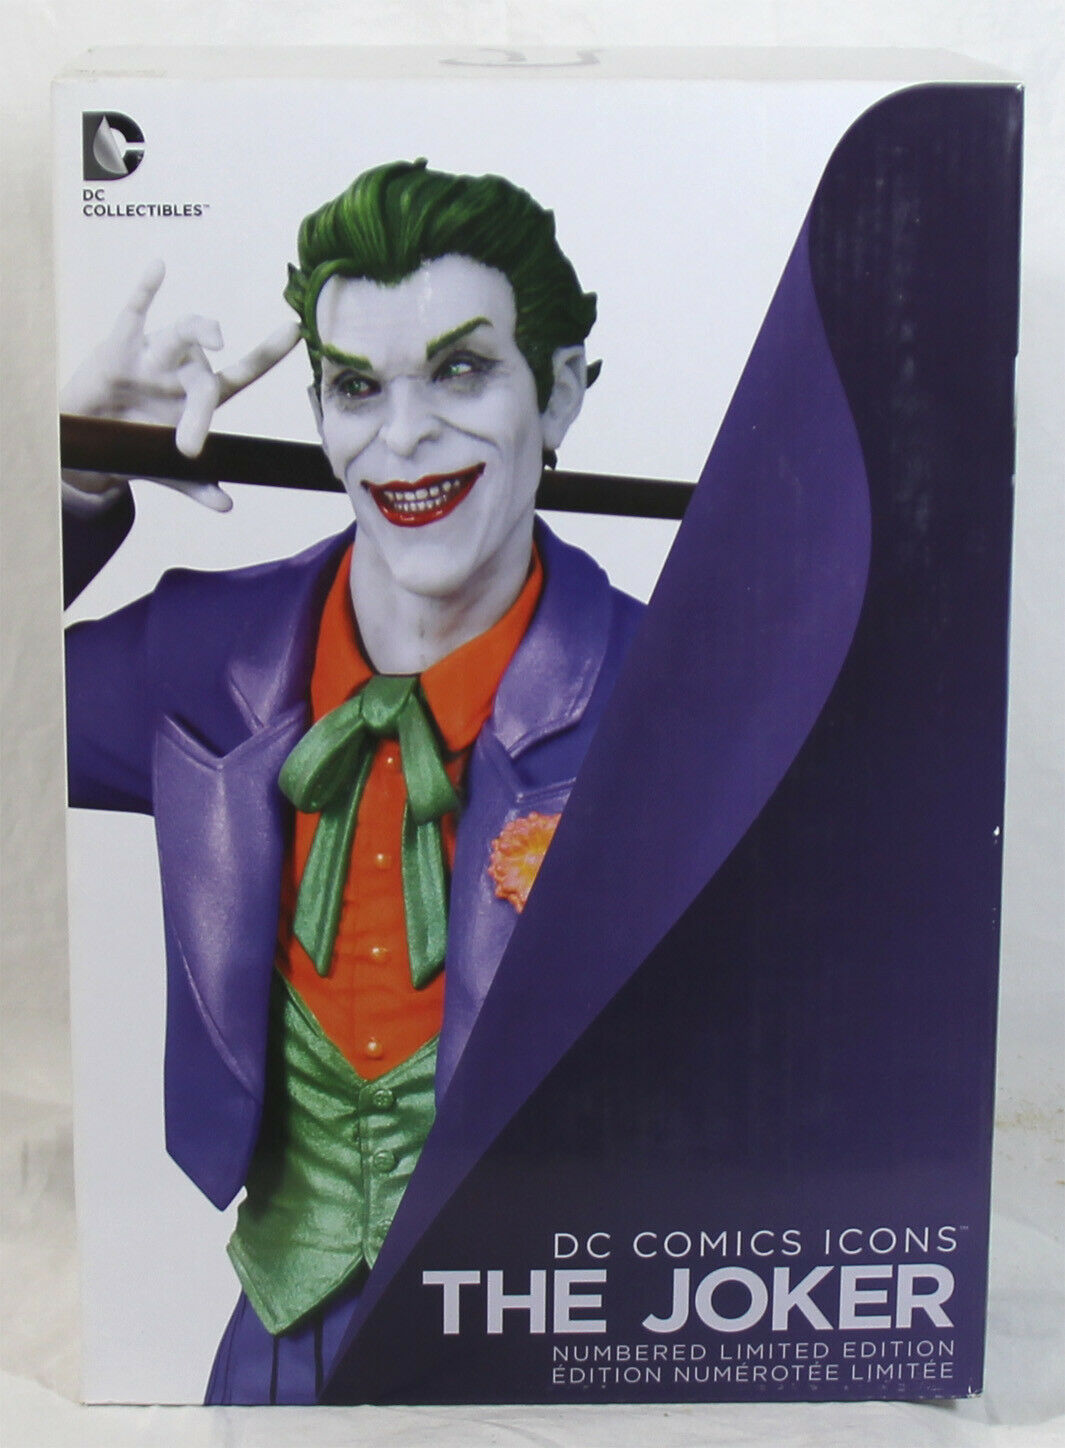 DC Collectibles DC Comics Icons The Joker sculpted by Alan Sales - New